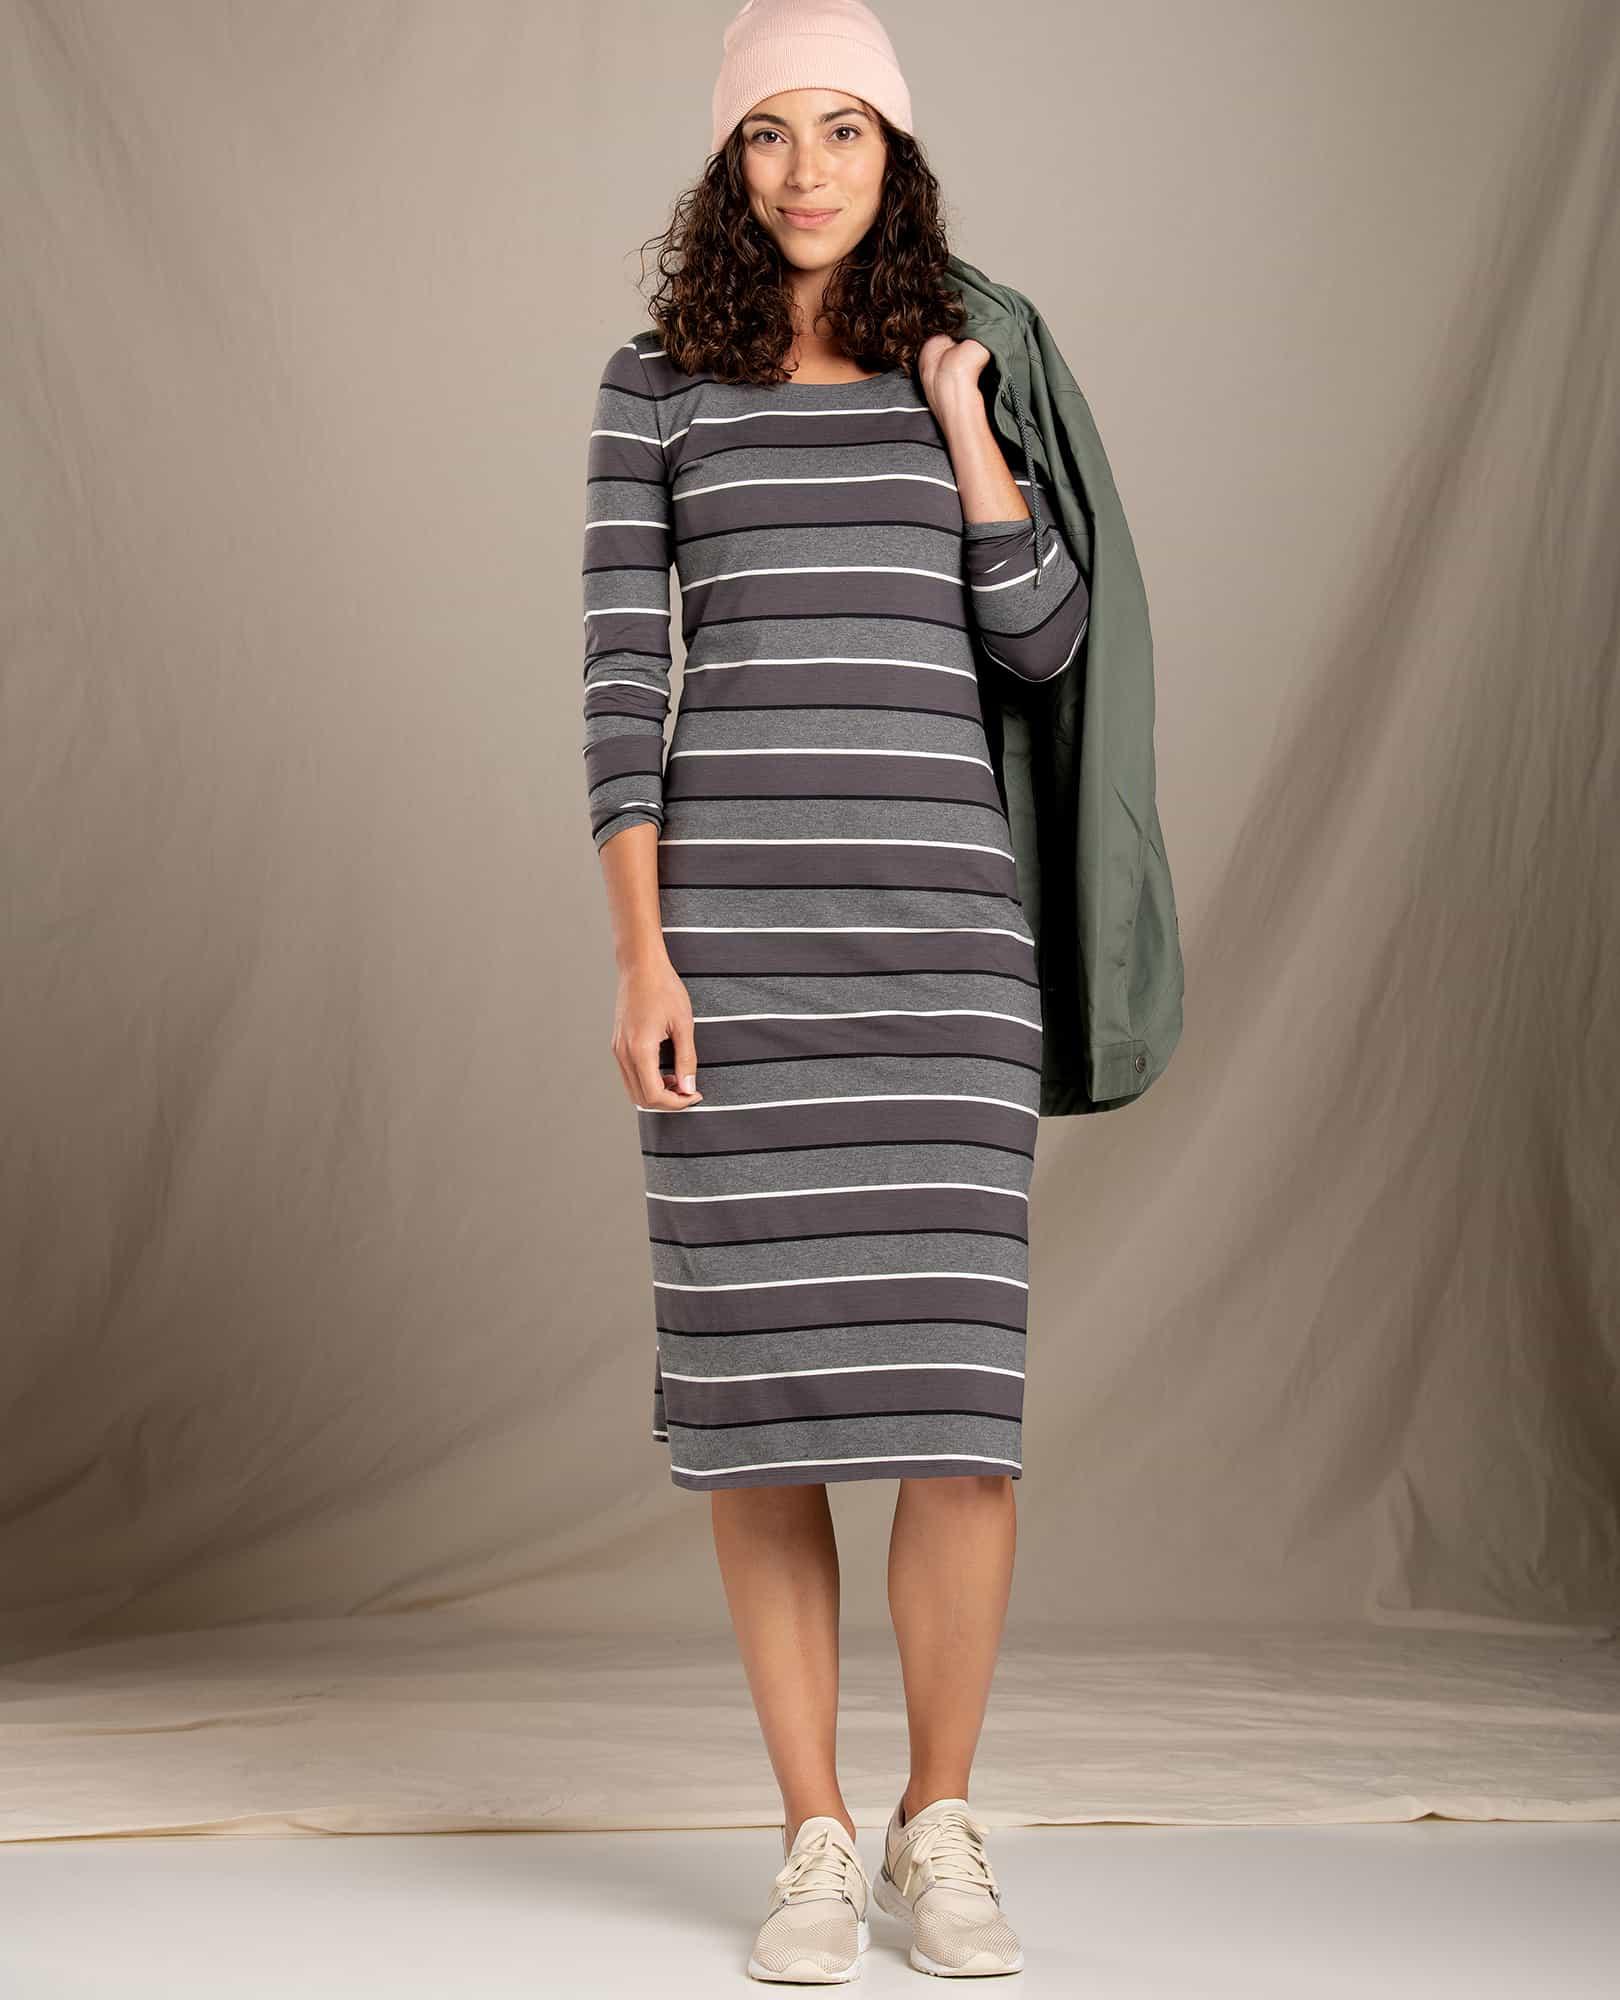 Natural Self Care Products - Toad & Co Montclair Midi Dress in Cotton and Tencel